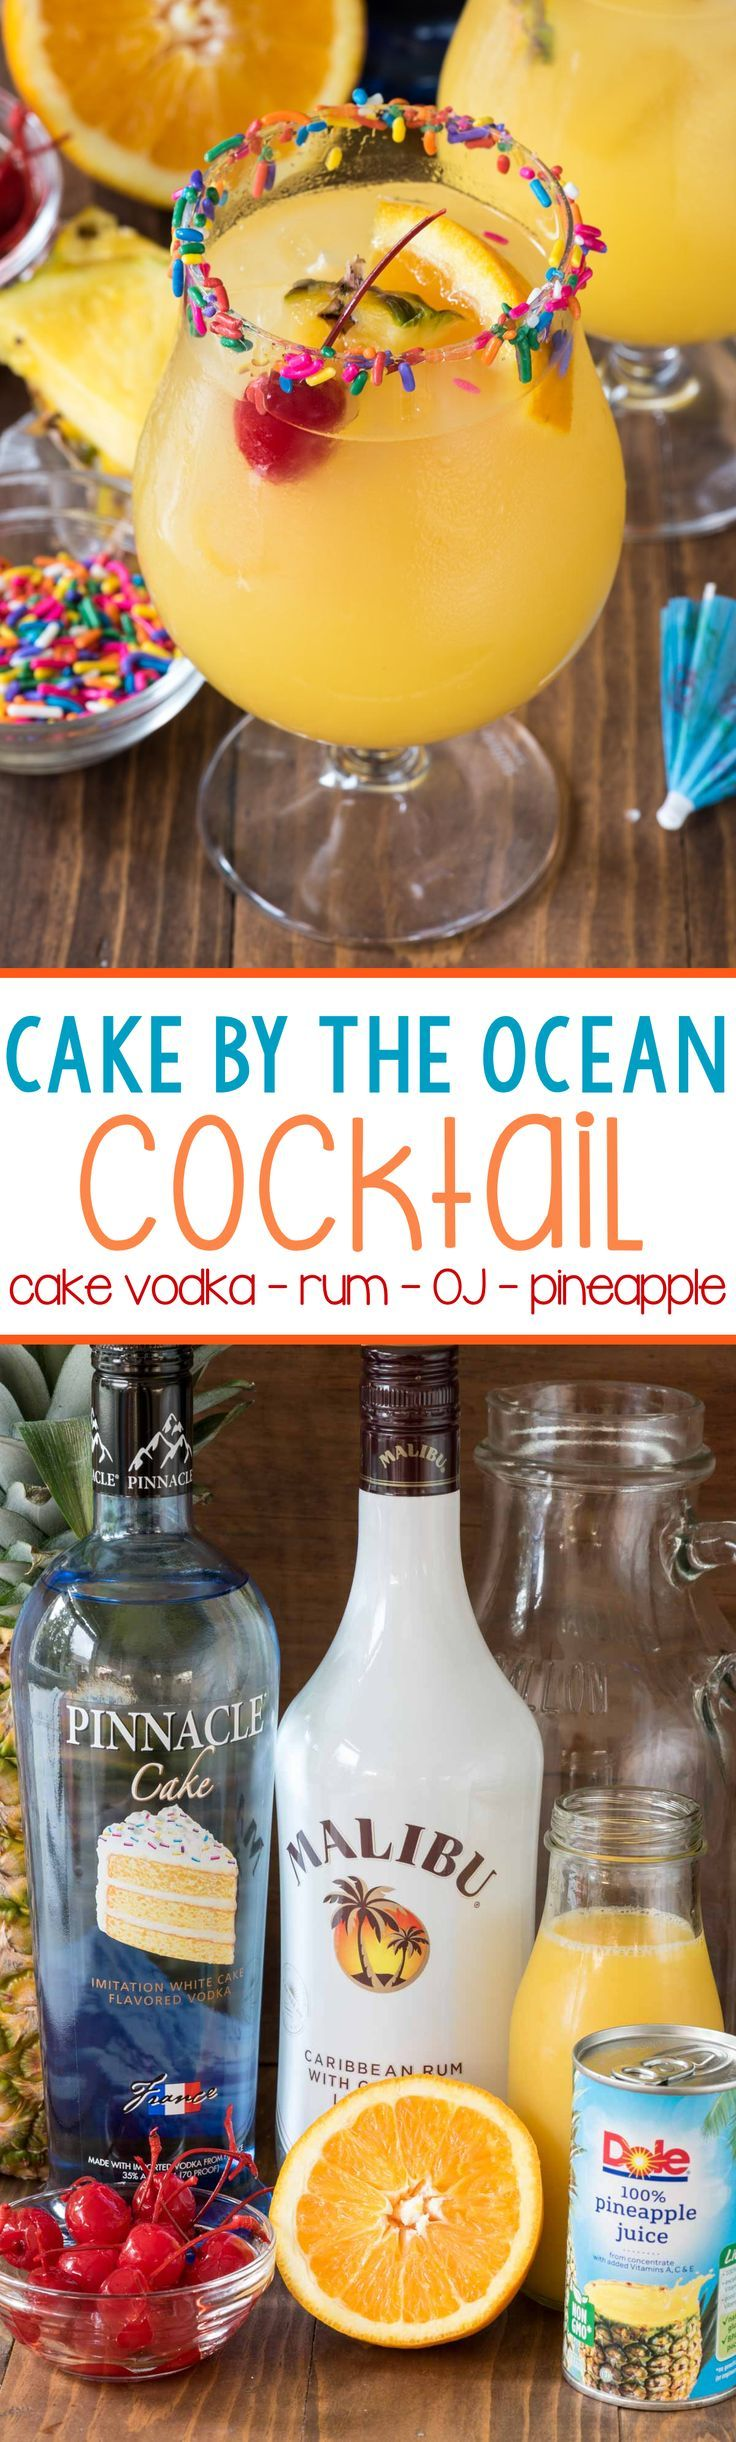 Cake by the Ocean Cocktail